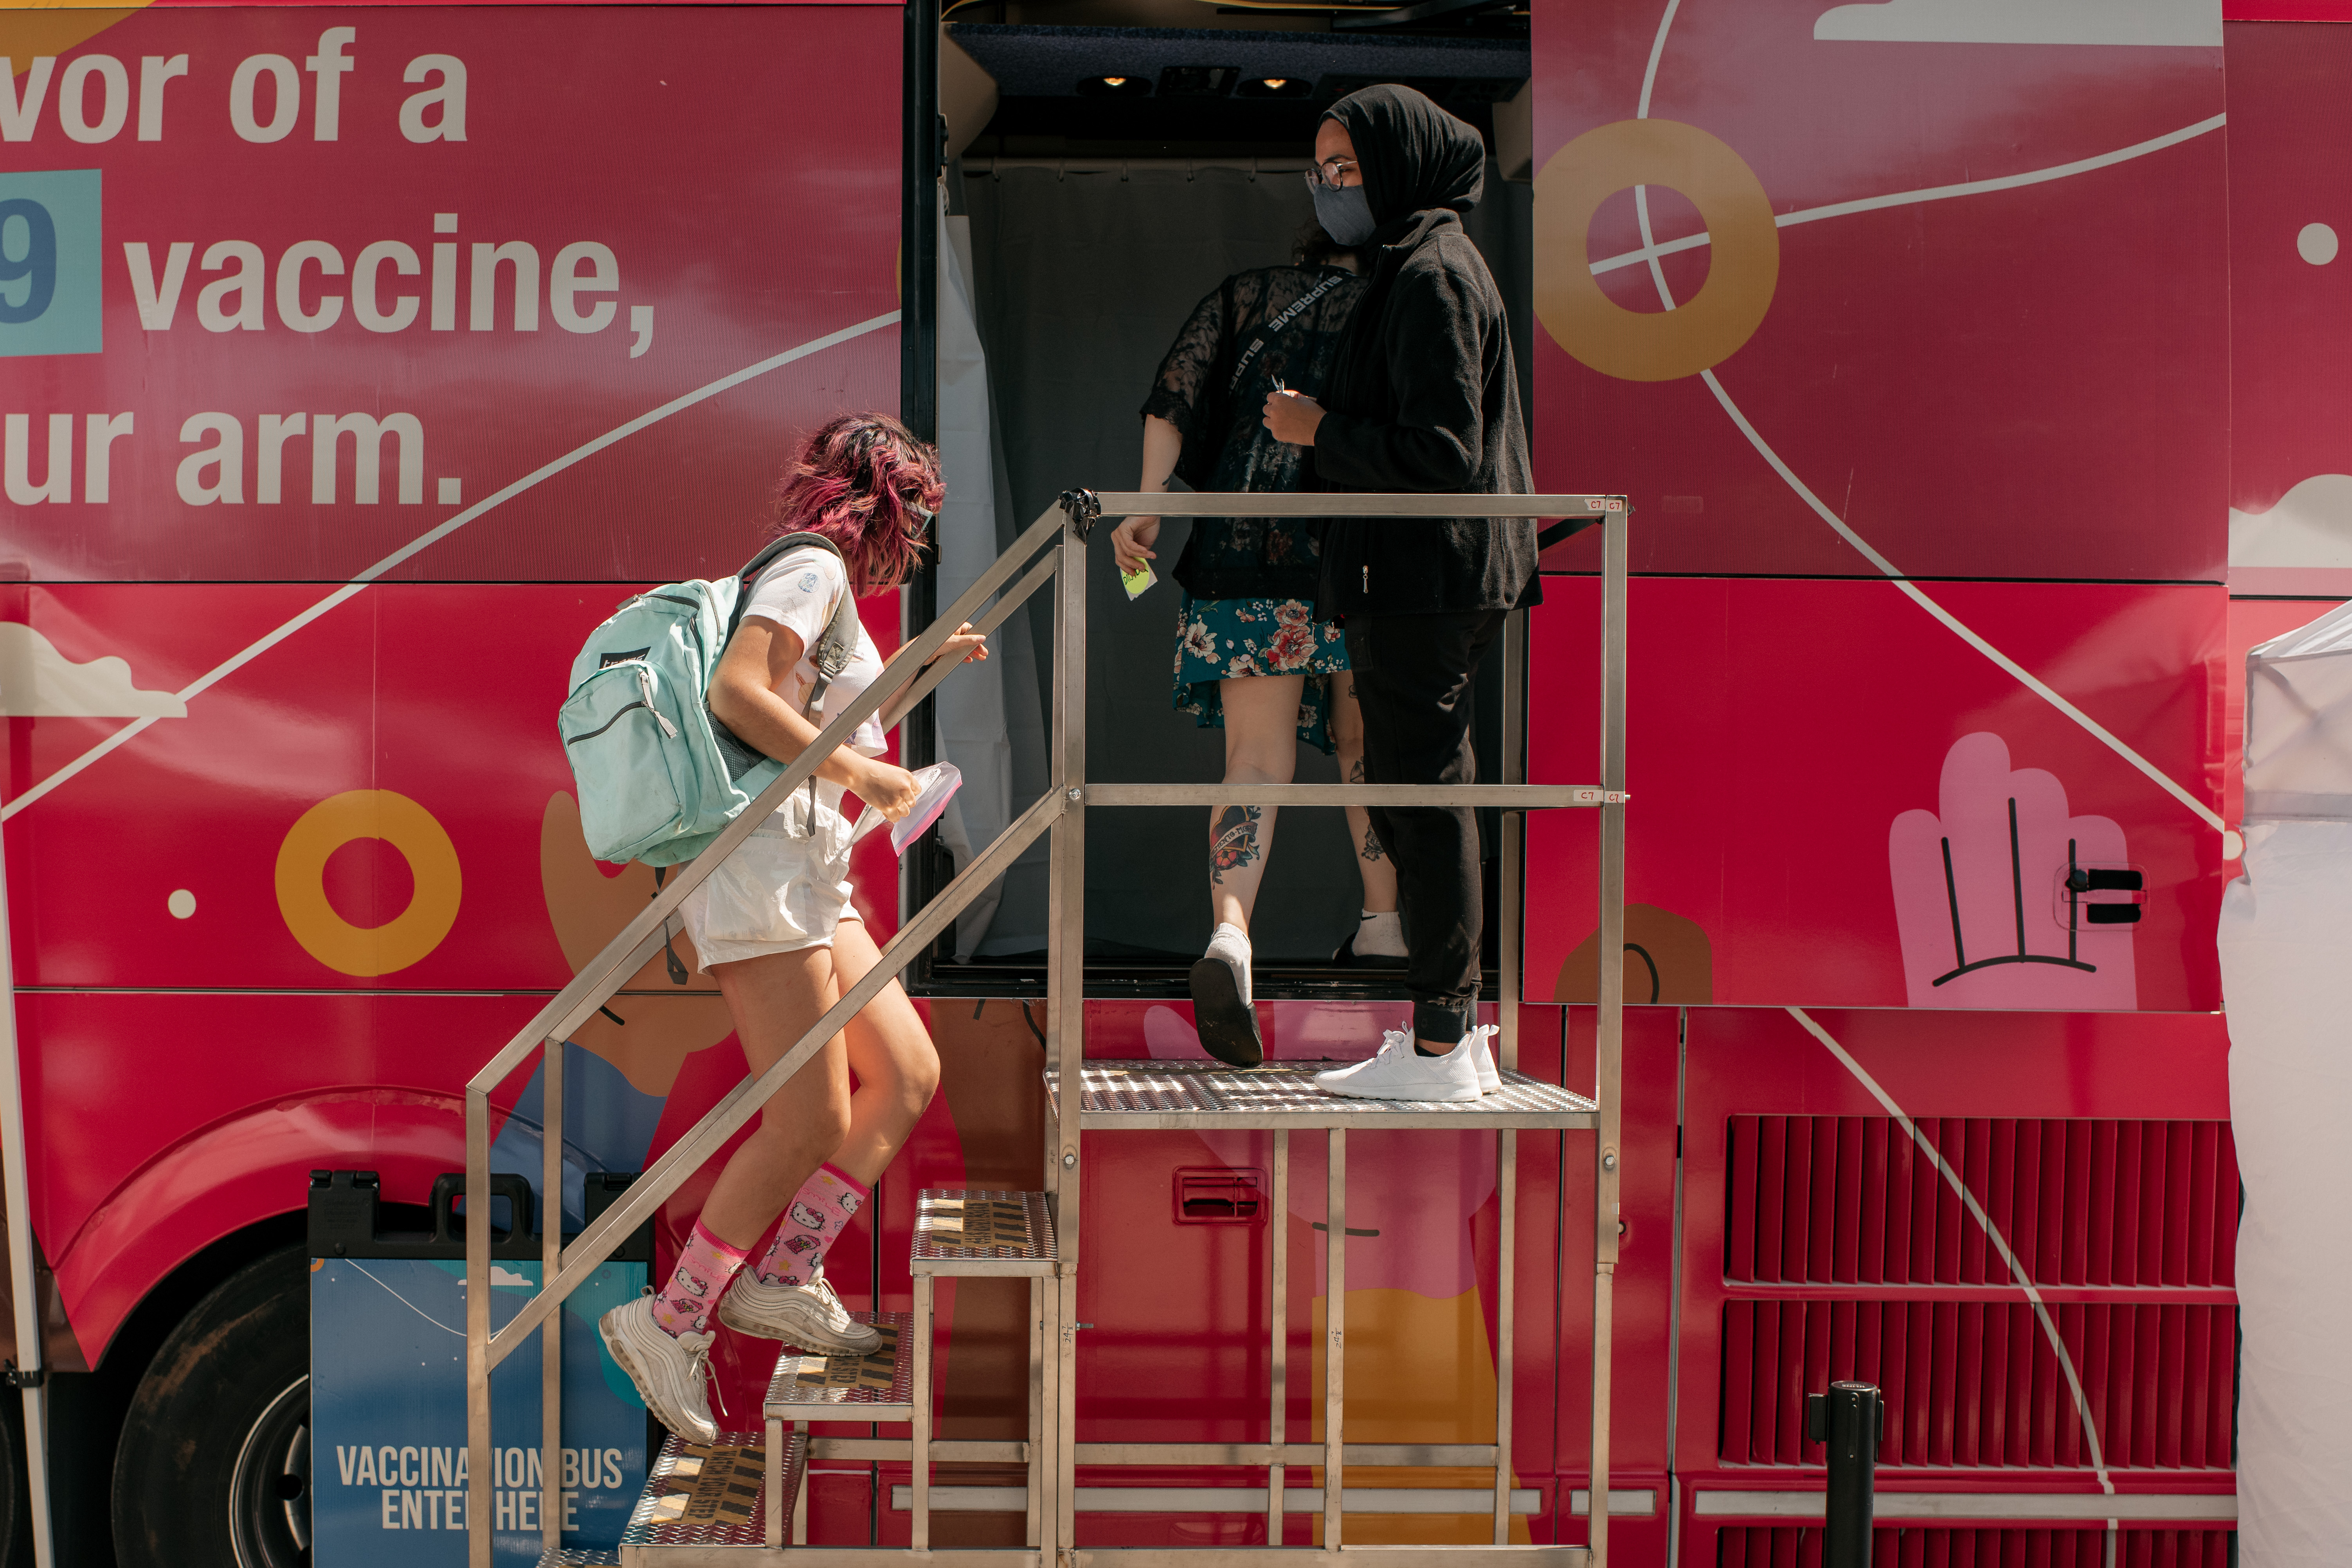 A teenager enters a pop-up COVID-19 vaccine site on June 5, 2021 in the Jackson Heights neighborhood in the Queens borough in New York City.